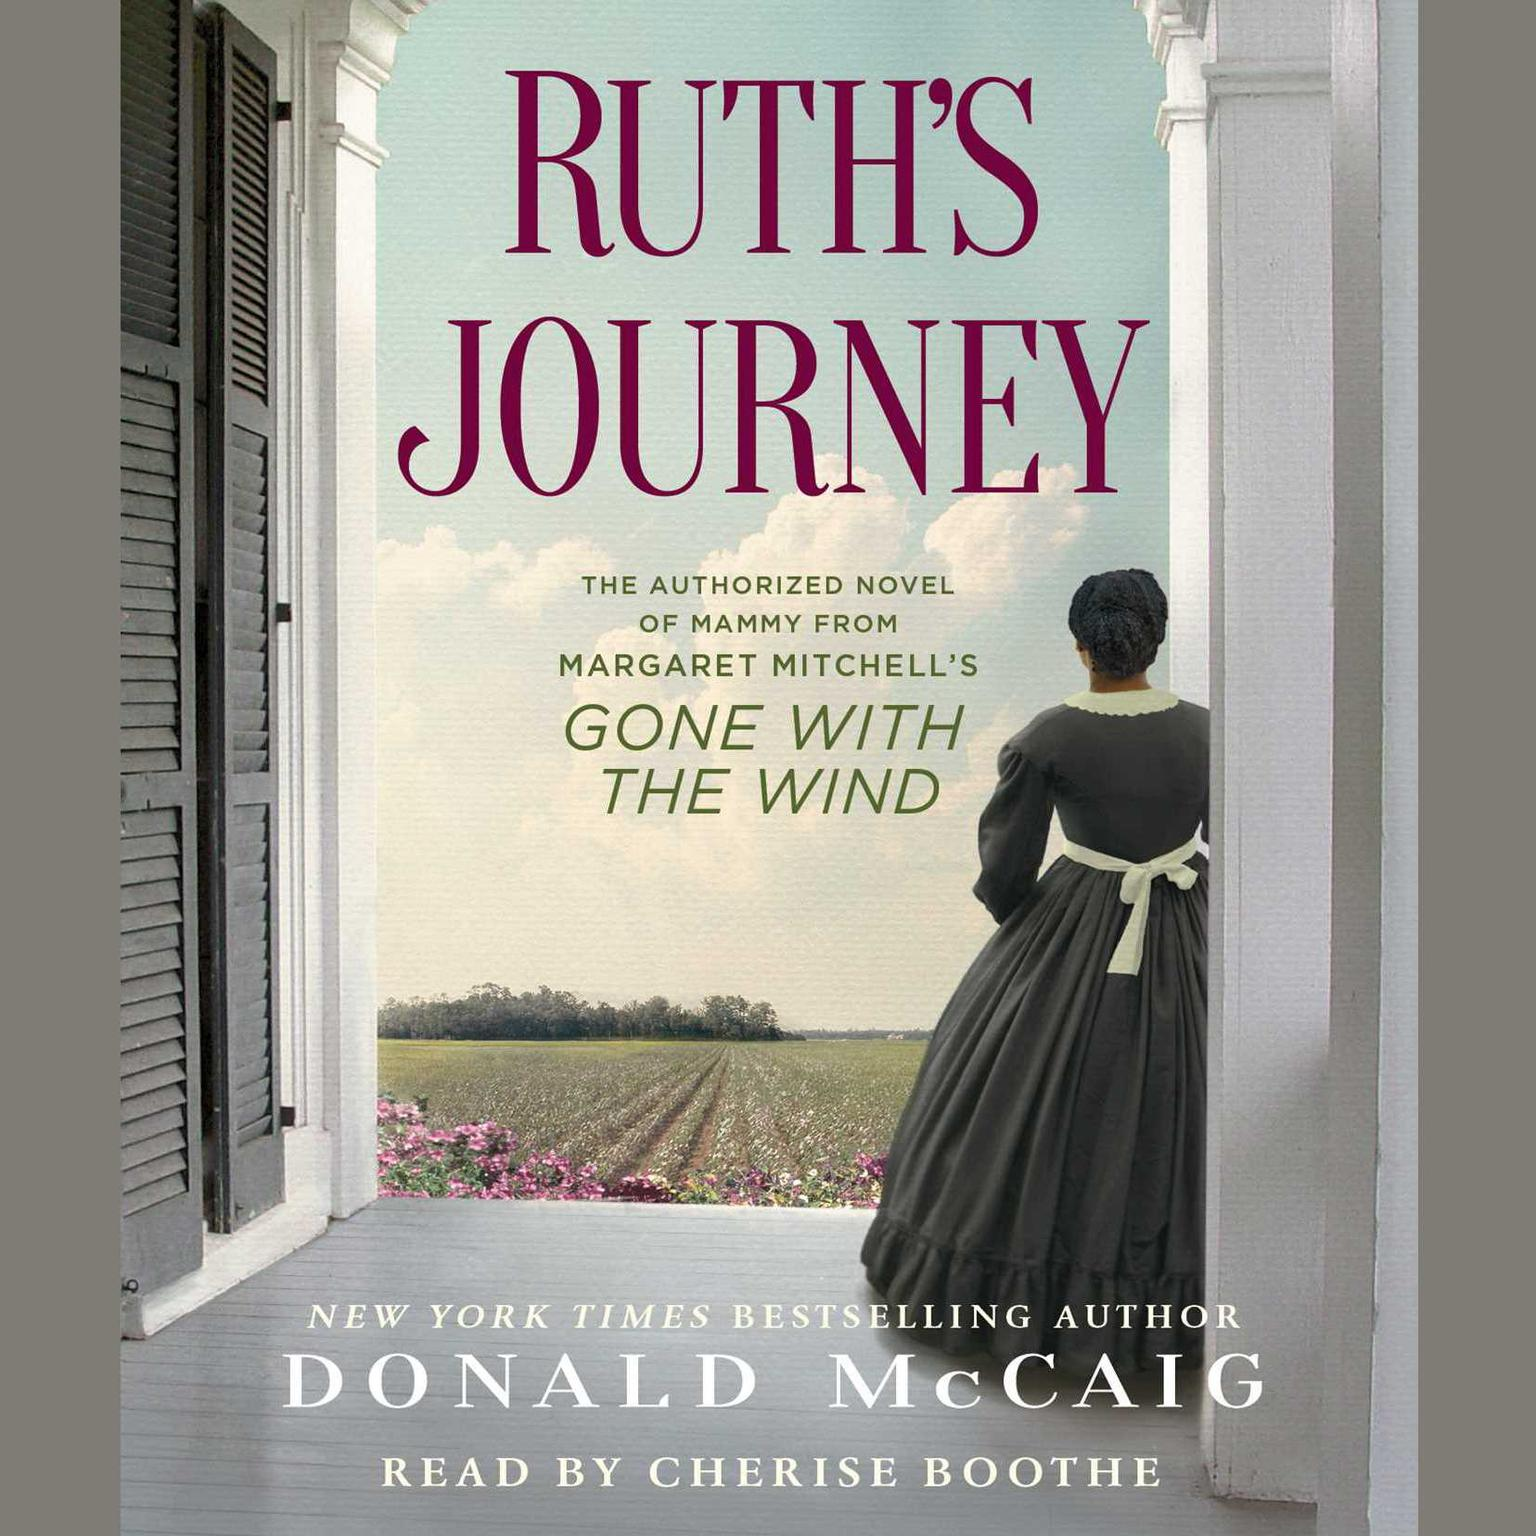 Printable Ruth's Journey: The Authorized Novel Based on Margaret Mitchell's Gone With the Wind Audiobook Cover Art